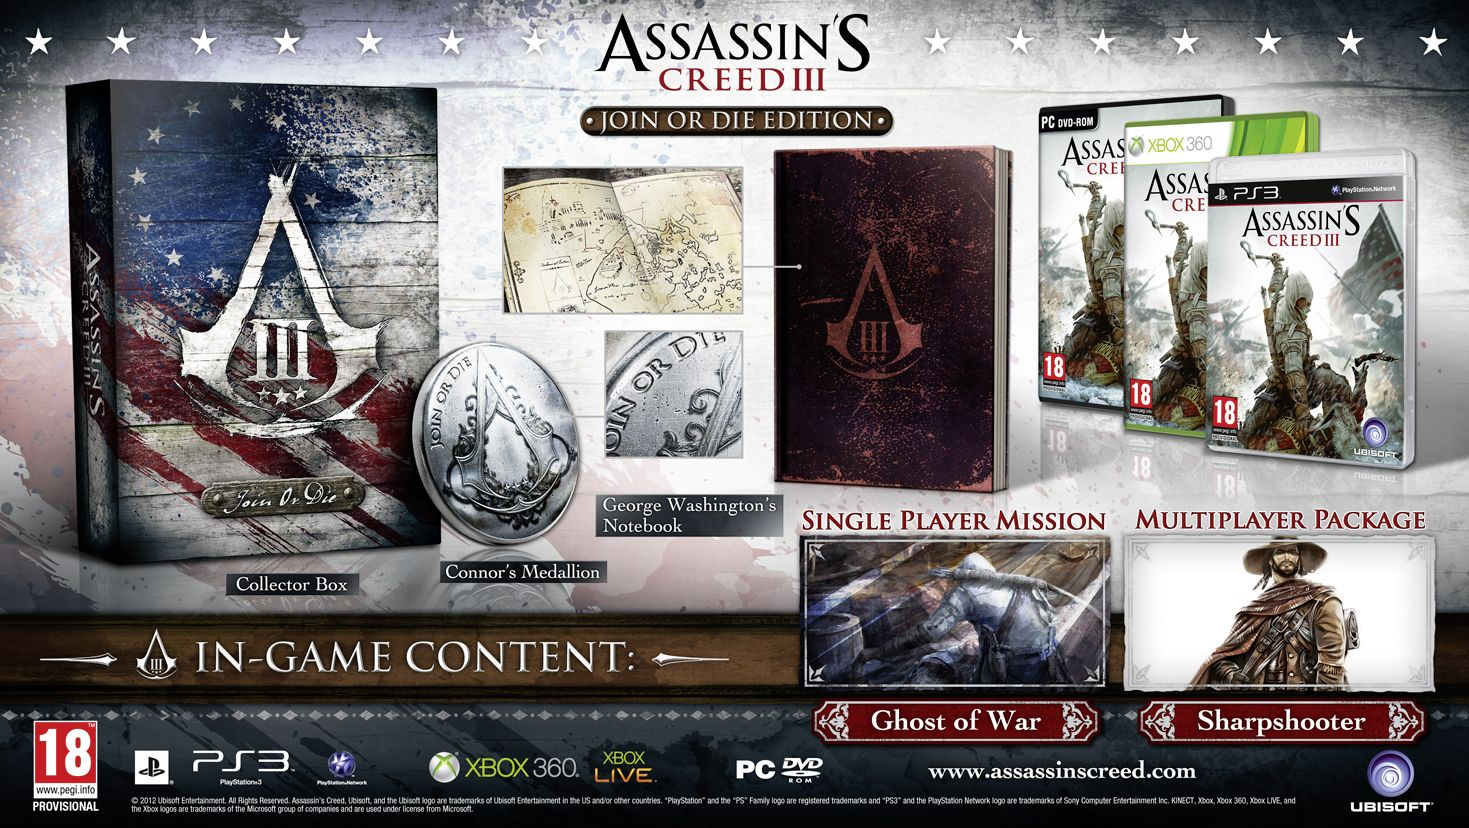 A Retail Copy Of Assassin S Creed Iii A Collector S Box